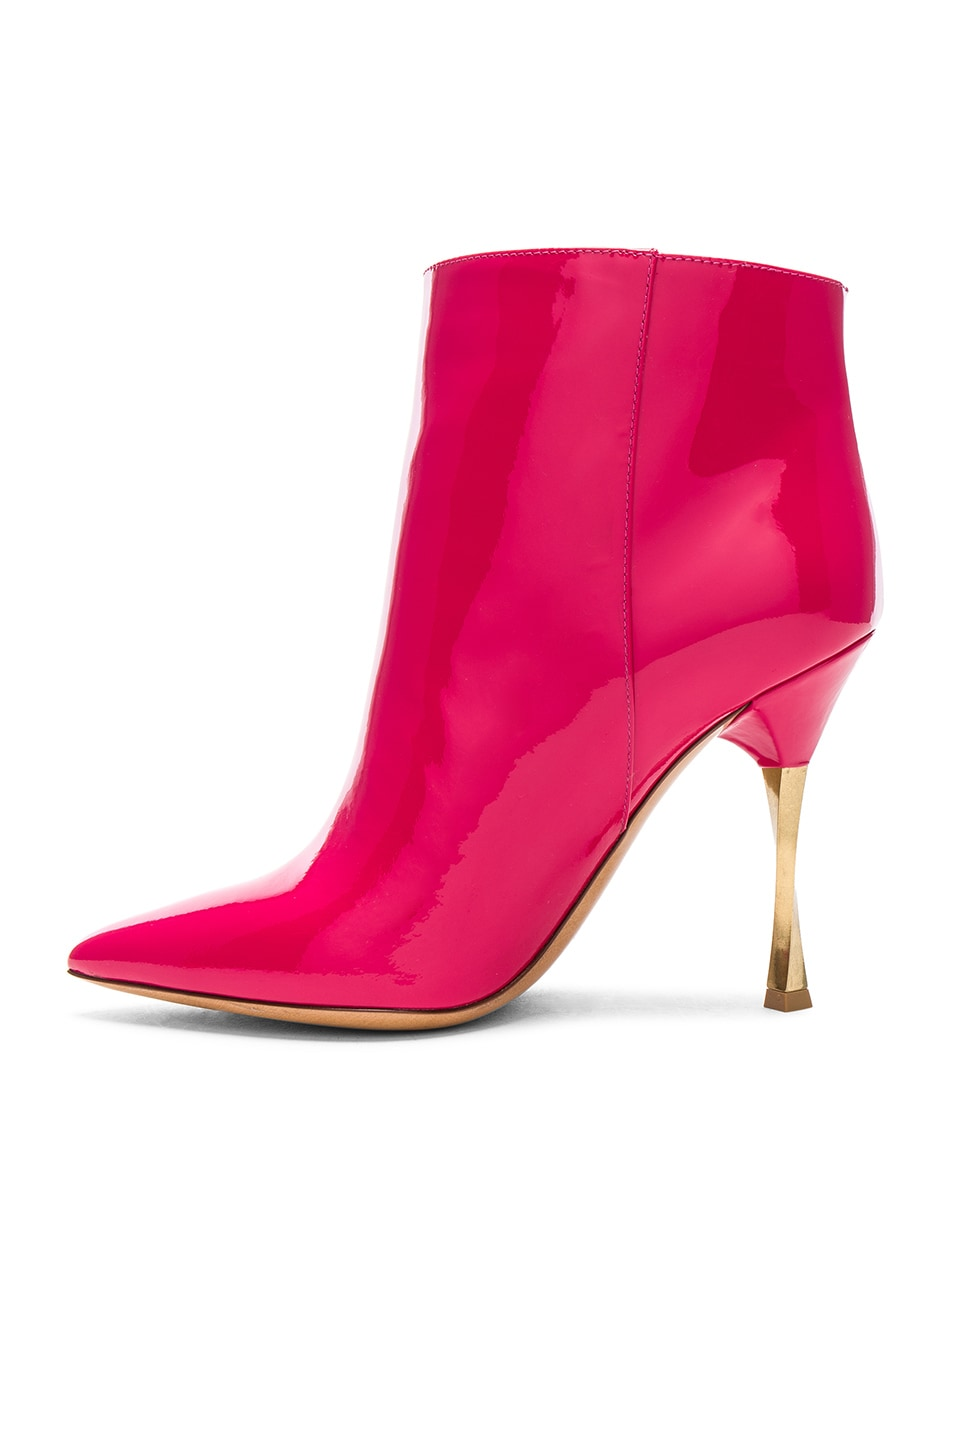 Image 5 of Valentino Patent Leather Ankle Boots in Fuchsia